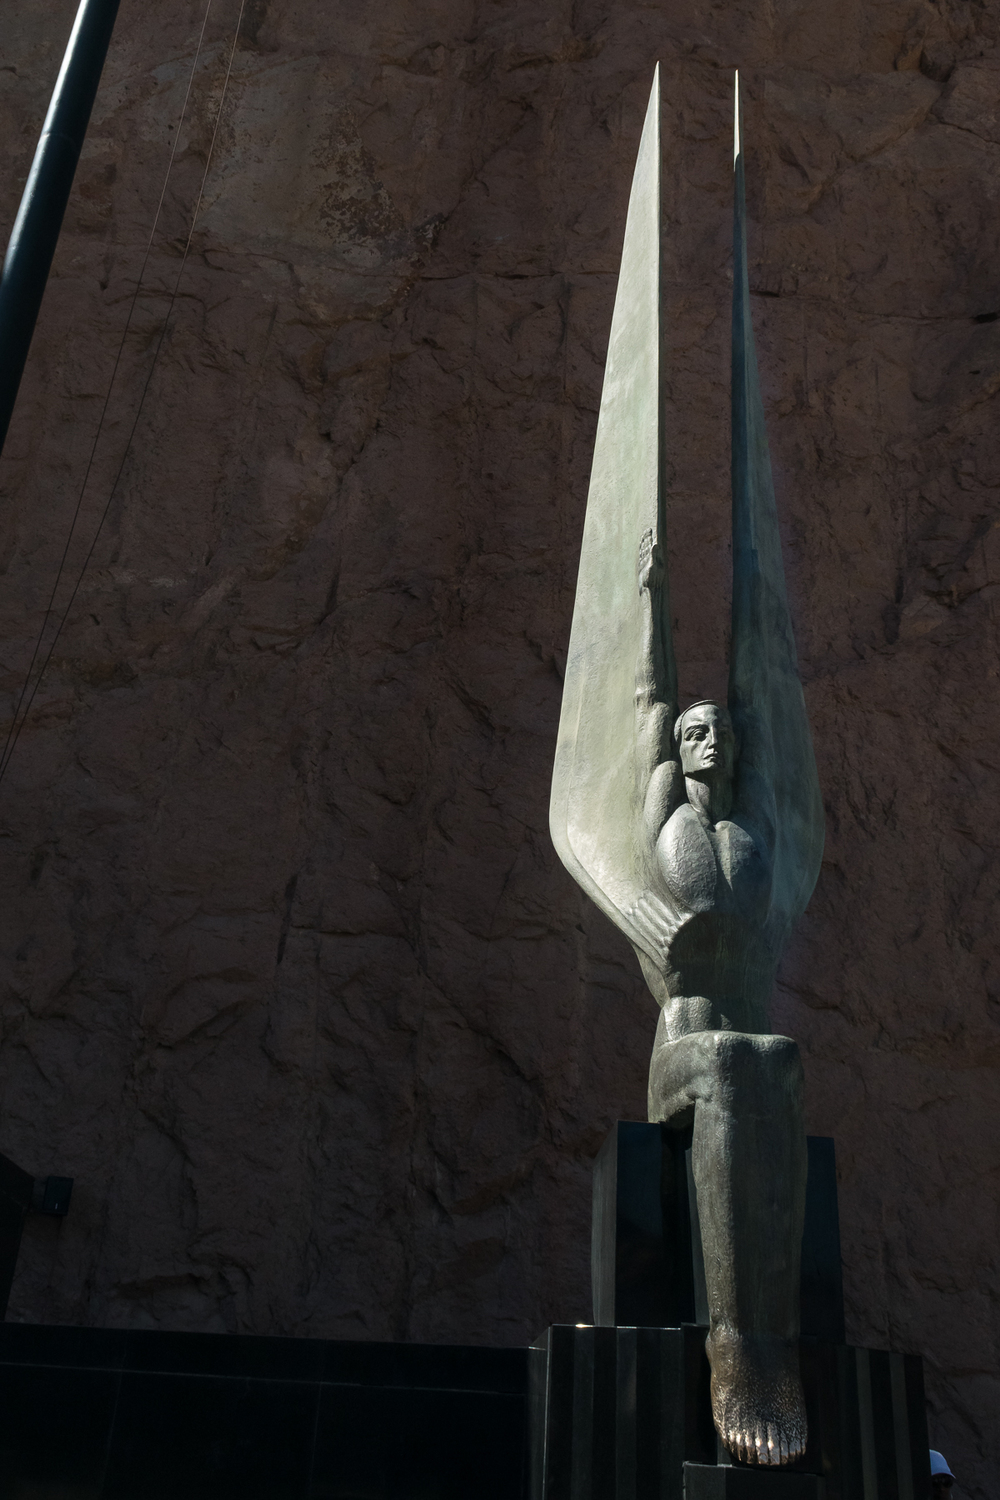 Hoover Dam Winged Figure of the Republic, Monument of Dedication Plaza; Sculptor Oskar Hansen